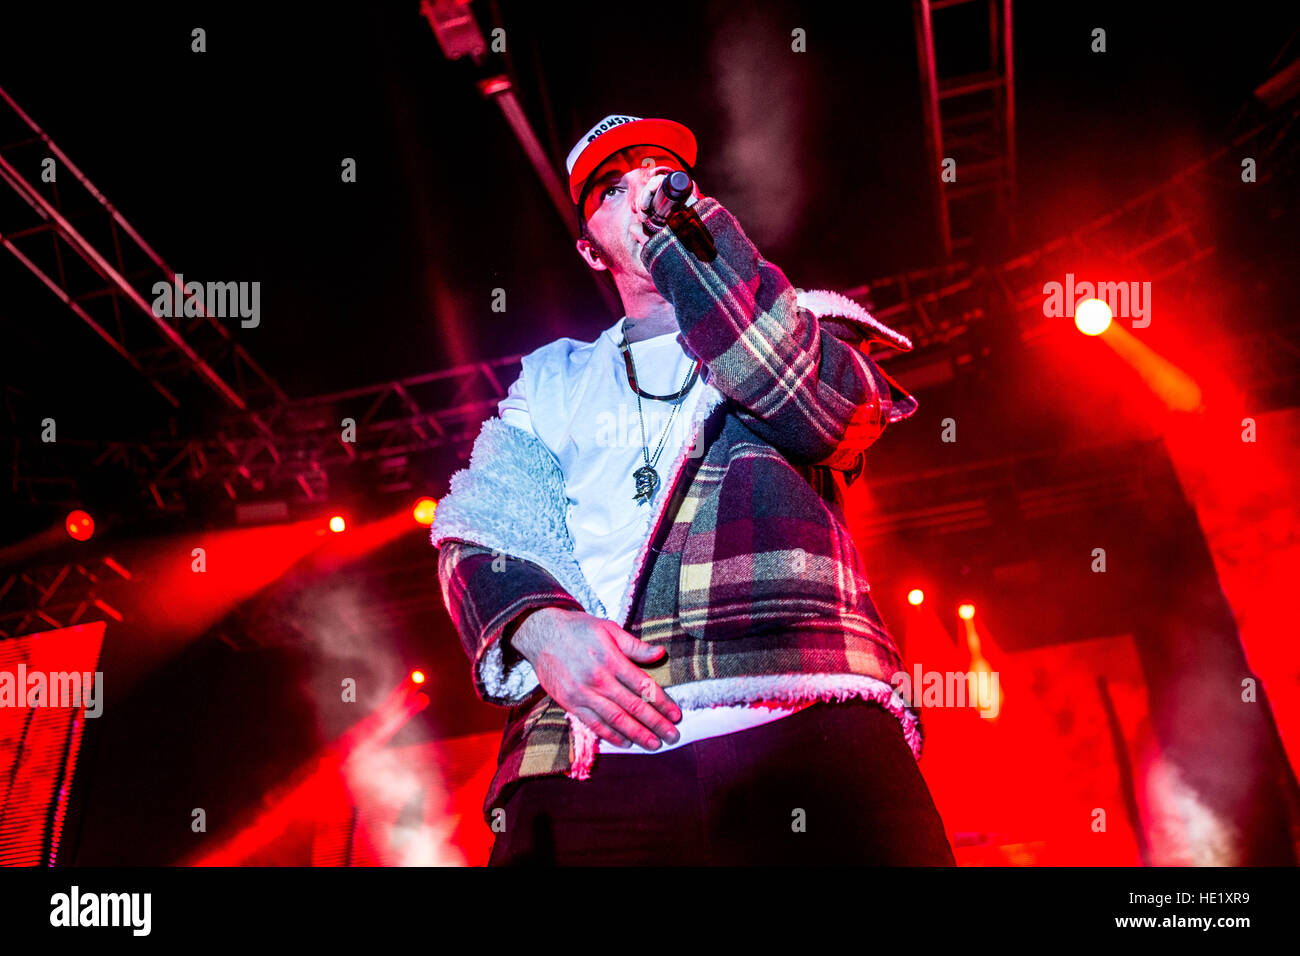 Milano, Italy. 15th Dec, 2016. Italian rapper Salmo performs live at Fabrique. © Mairo Cinquetti/Pacific Press/Alamy Stock Photo